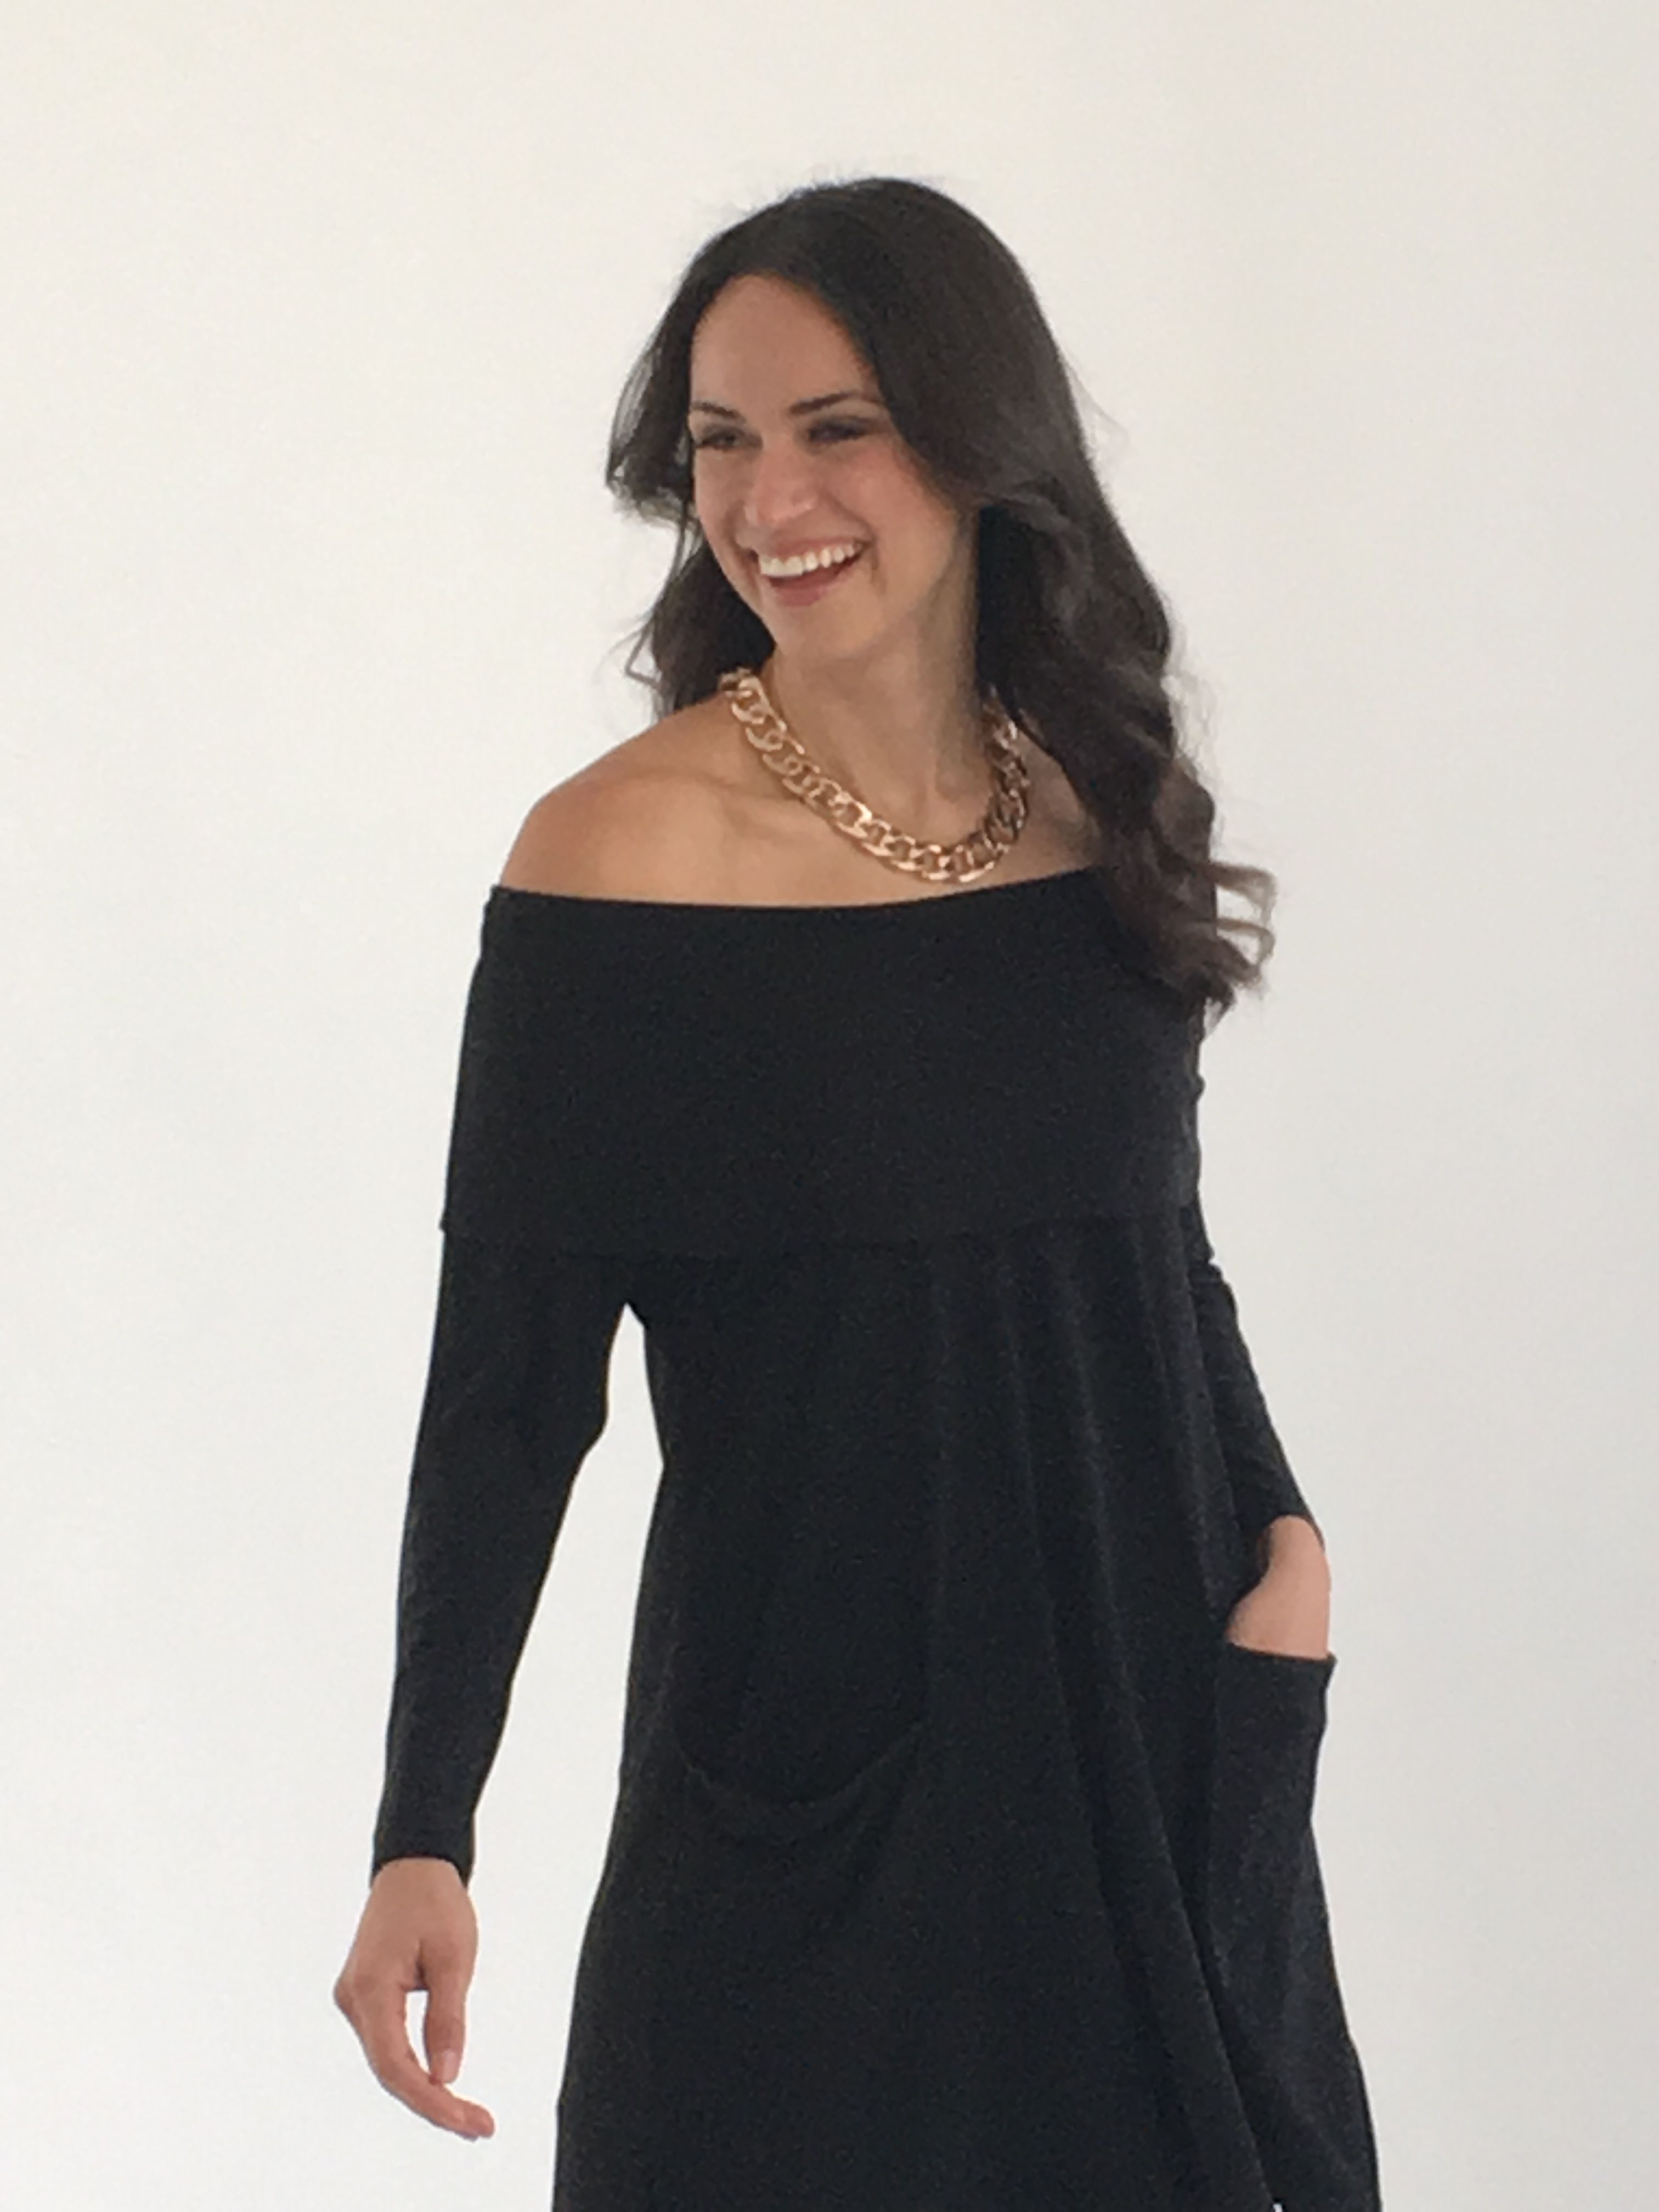 The Off-the-Shoulder Tunic in Black  Even if you like to cover your arms, like I do, you can still enjoy an off-the-shoulder look. This tunic has shape, and like all of our tops is very figure flattering. Grazes over your hips, mid-thigh length with slits.  Elastic holds comfortably around your upper arm and doesn't feel like it's going to fall. Can also be worn as a cowl neck.  A drape pocket is the perfect dot on the i! Looks FAB day or night.